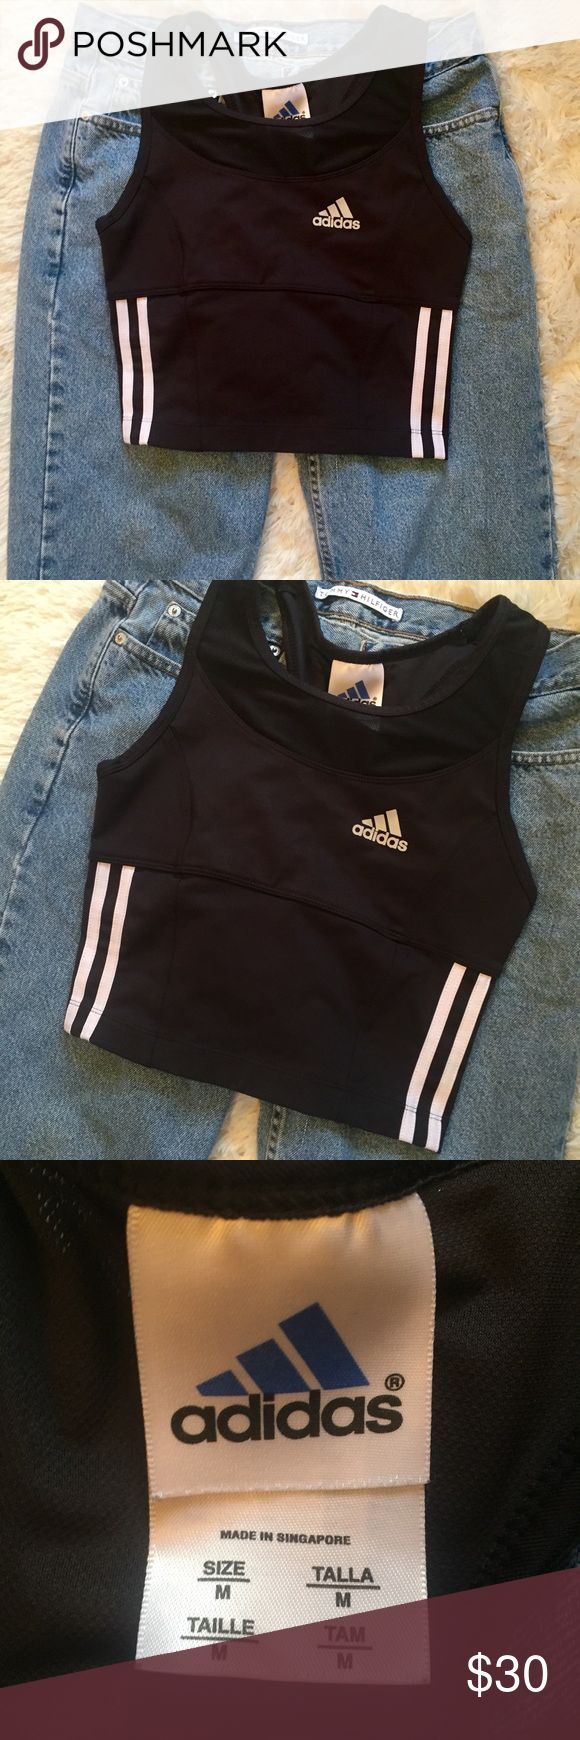 """Adidas Black & White Crop top bra top medium Adidas Climalite black and white crop top bra top. In excellent condition! Size medium. Measurements; 14"""" pit to pit (stretchy), length 16"""". As seen on celebrities such as Kylie Jenner! Reasonable offers always accepted. adidas Tops Crop Tops"""